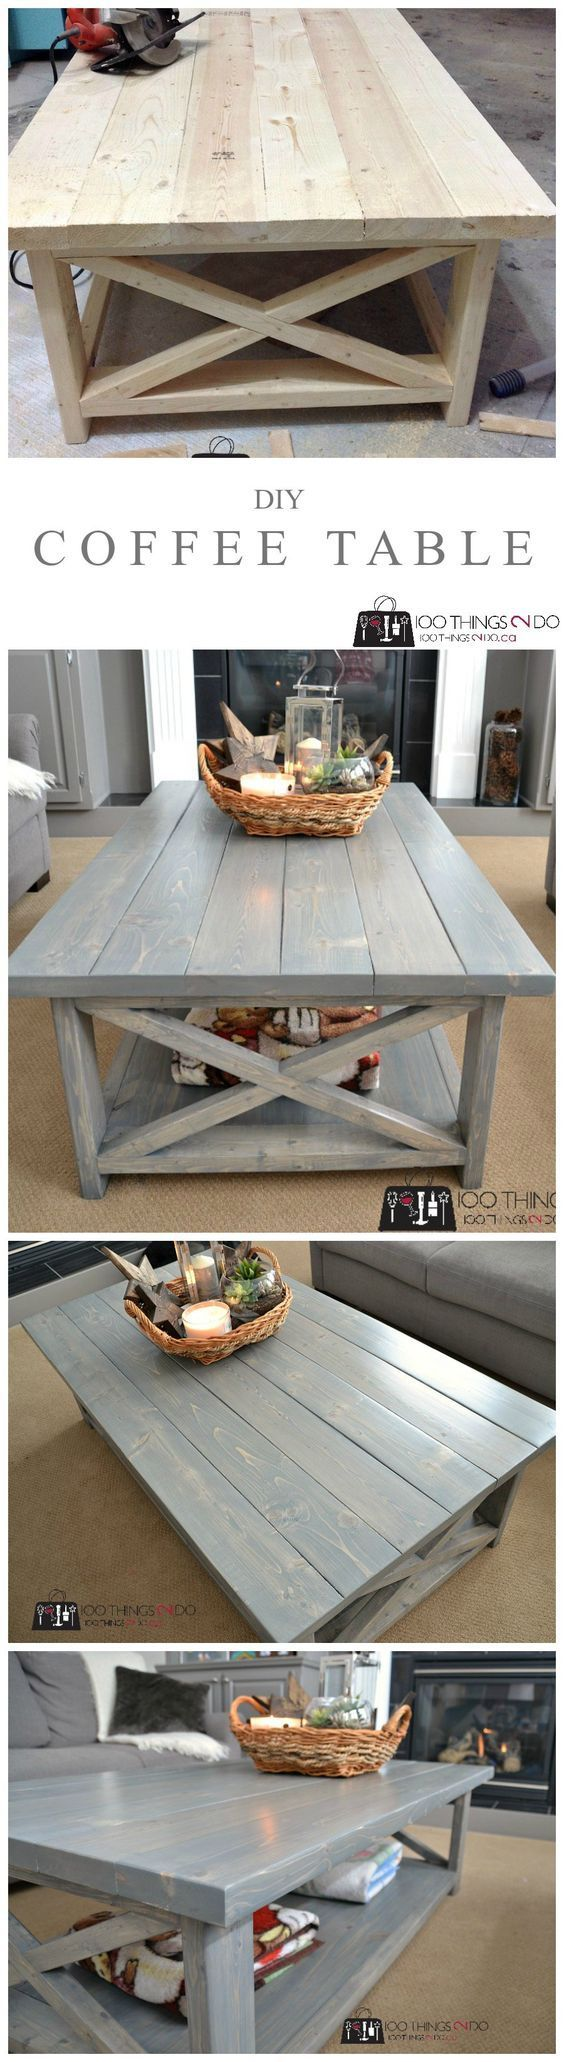 Best Diy Coffee Table Plans Ideas On Pinterest Build A - Charming vintage diy sawhorse coffee table